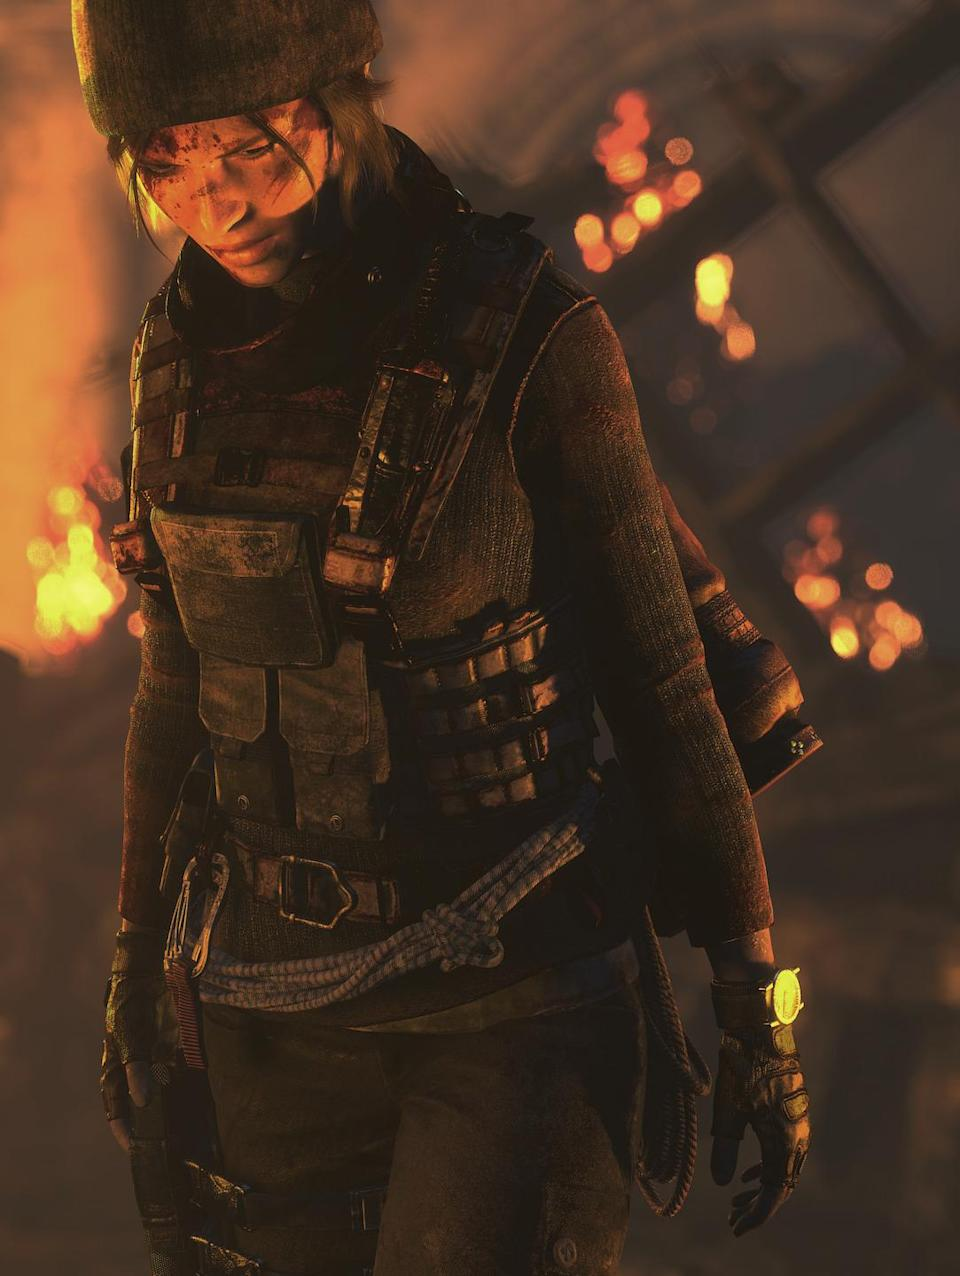 """<p>This release augments 'Rise of the Tomb Raider' with a new DLC called """"Blood Ties"""" with PlayStation VR support, as well as all the previously released DLCs, additional weapons, and """"Lara's Nightmare"""" mode. (Photo: Square Enix) </p>"""